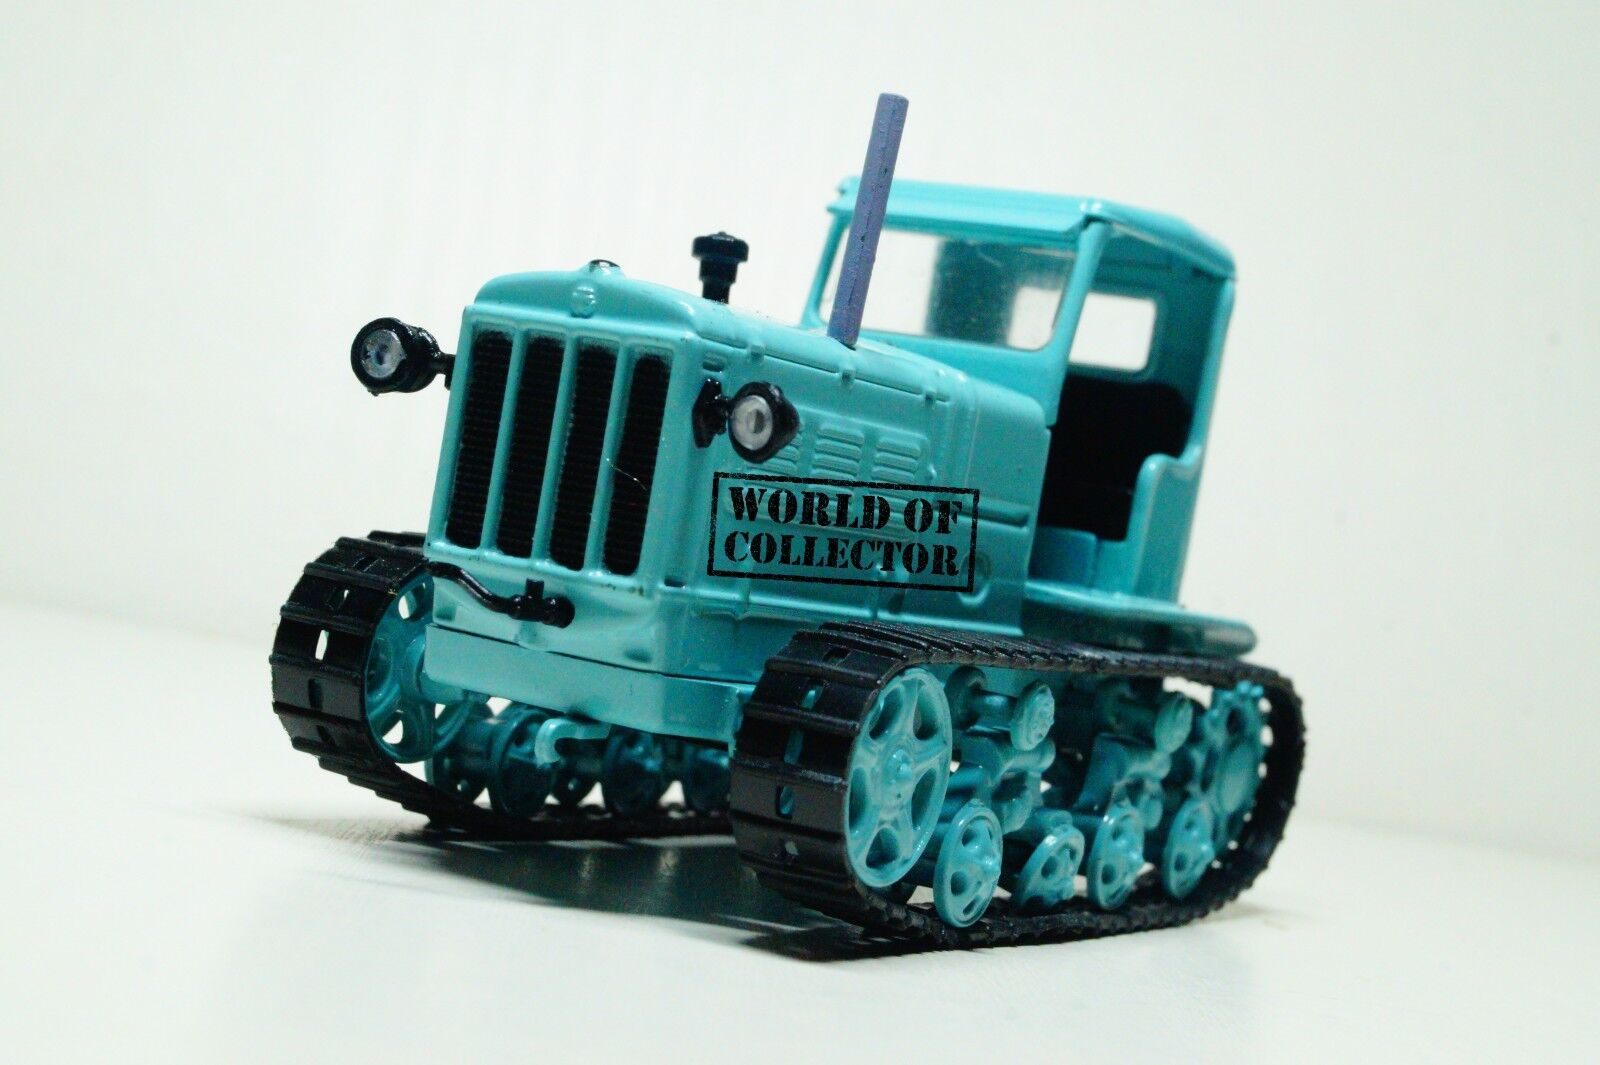 SHZT NATI Tractor USSR Scale 1 43 Hachette Collections Diecast model